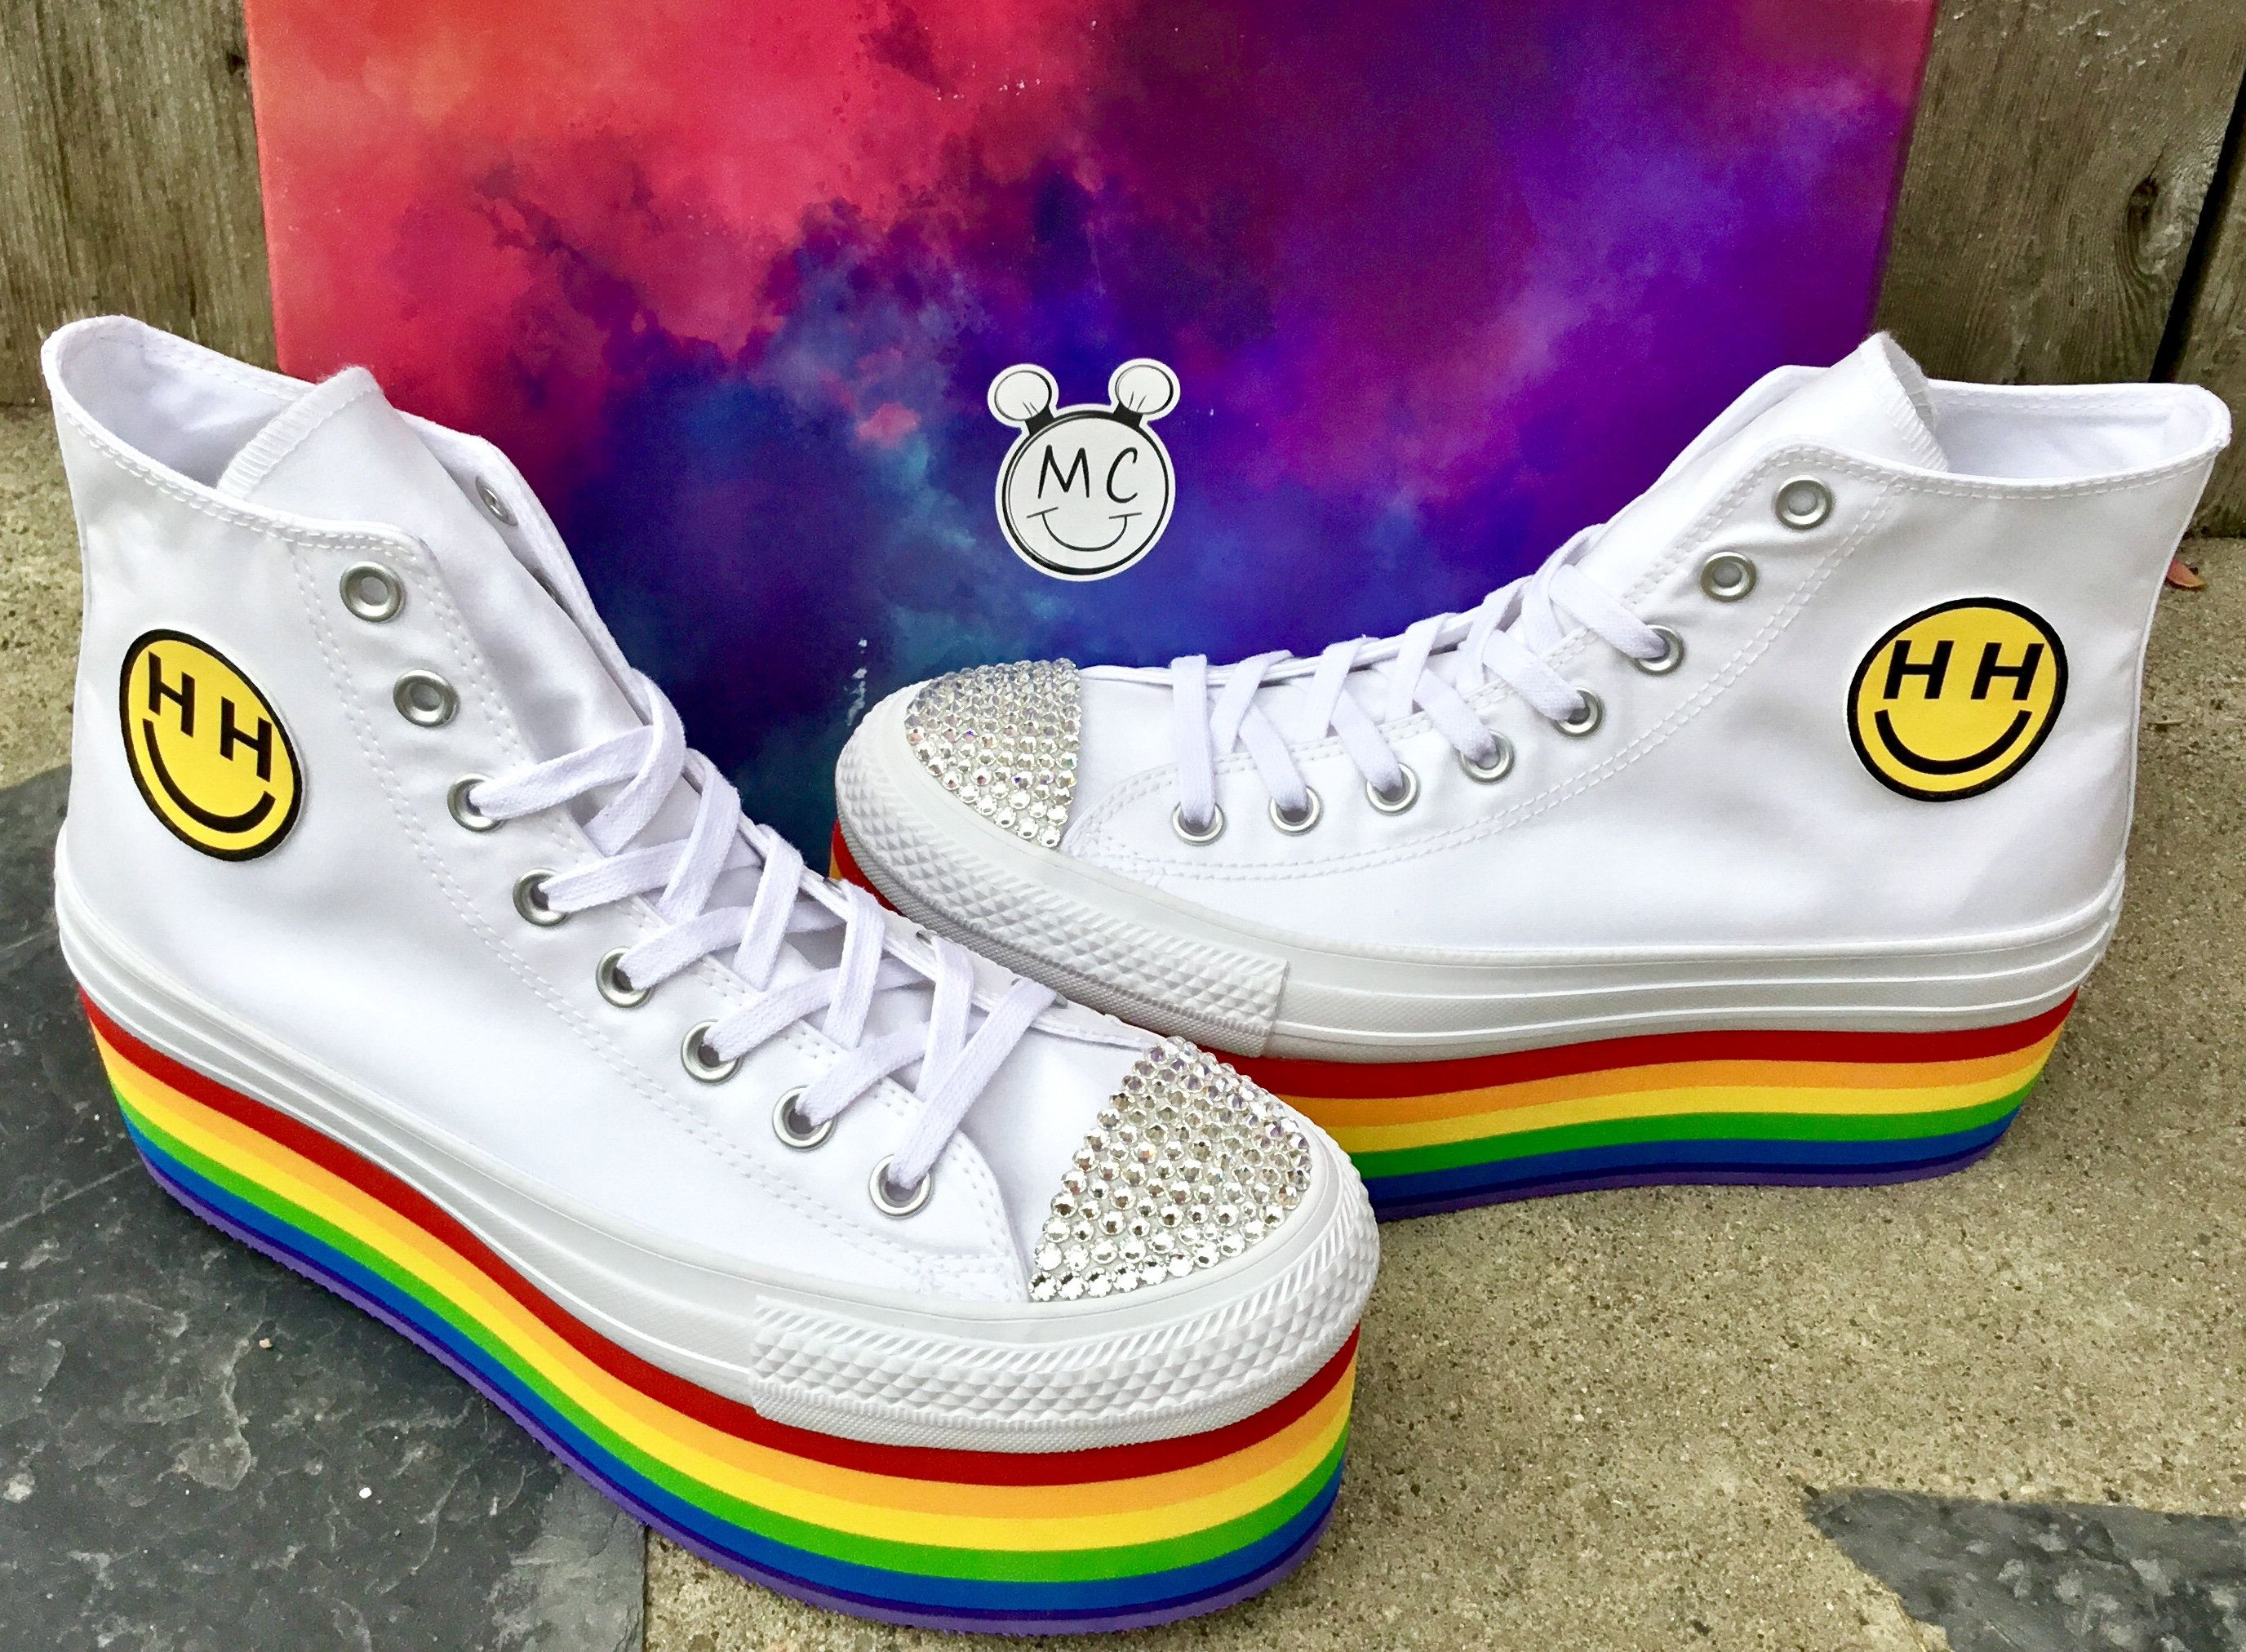 694f43b5607592 Rainbow Converse High Top Lady Pride Platform Glitter 2018 Miley Cyrus  Custom LGTBQ w  Swarovski Crystal Chuck Taylor All Star Sneakers Shoe by ...